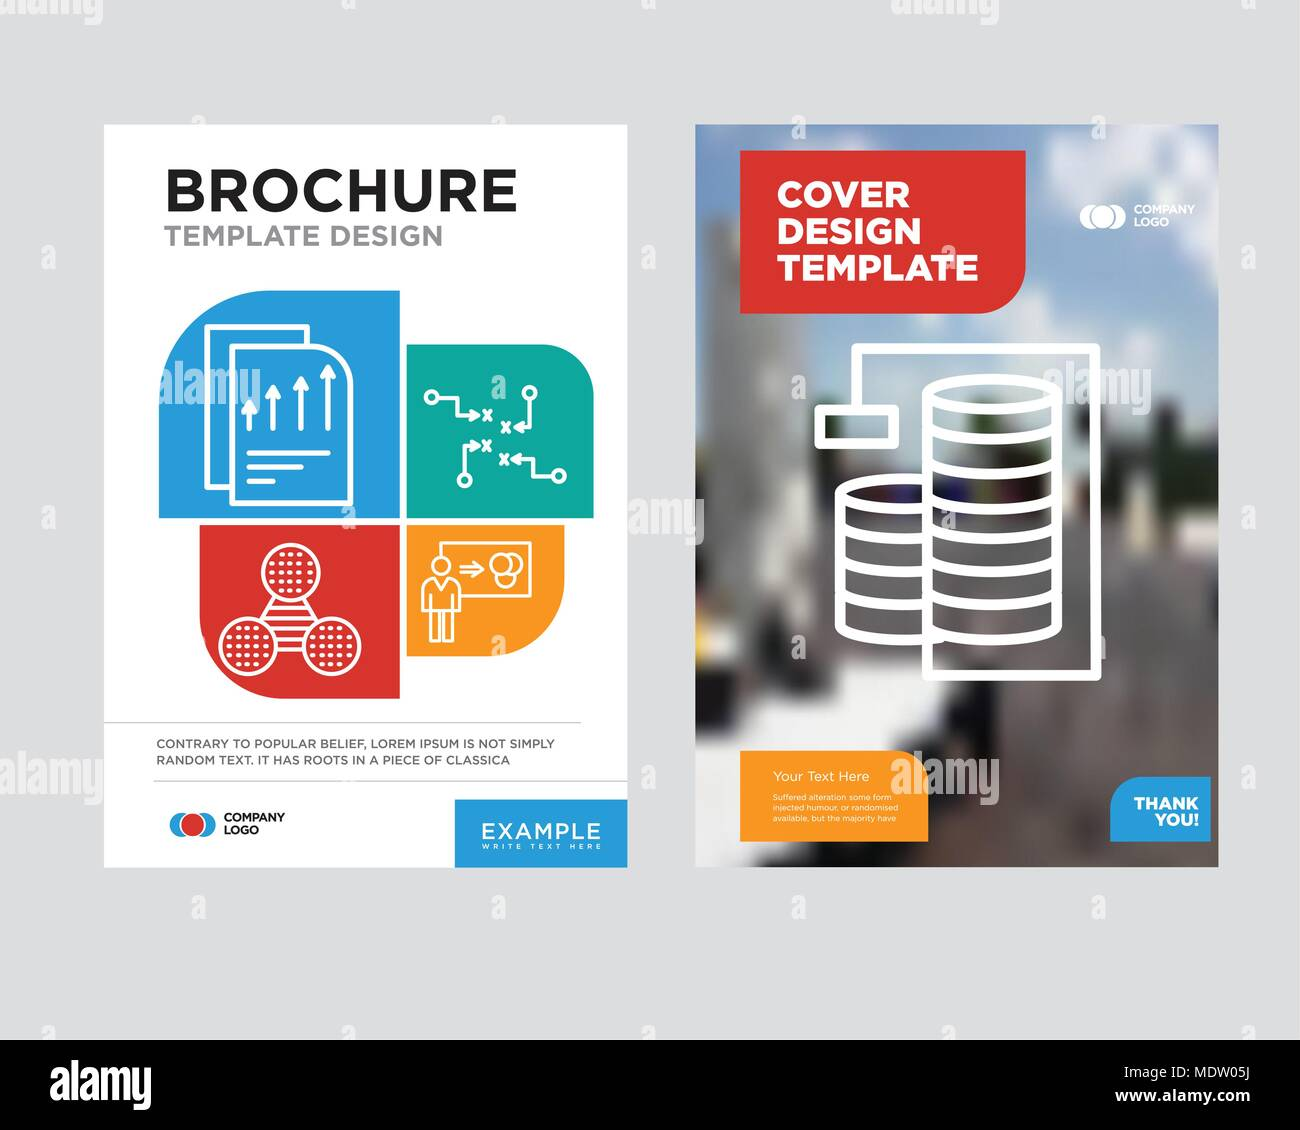 Database Analysis brochure flyer design template with abstract photo background, Person explaining data, Strategy sketch, Pie graphic comparison, Bars - Stock Image